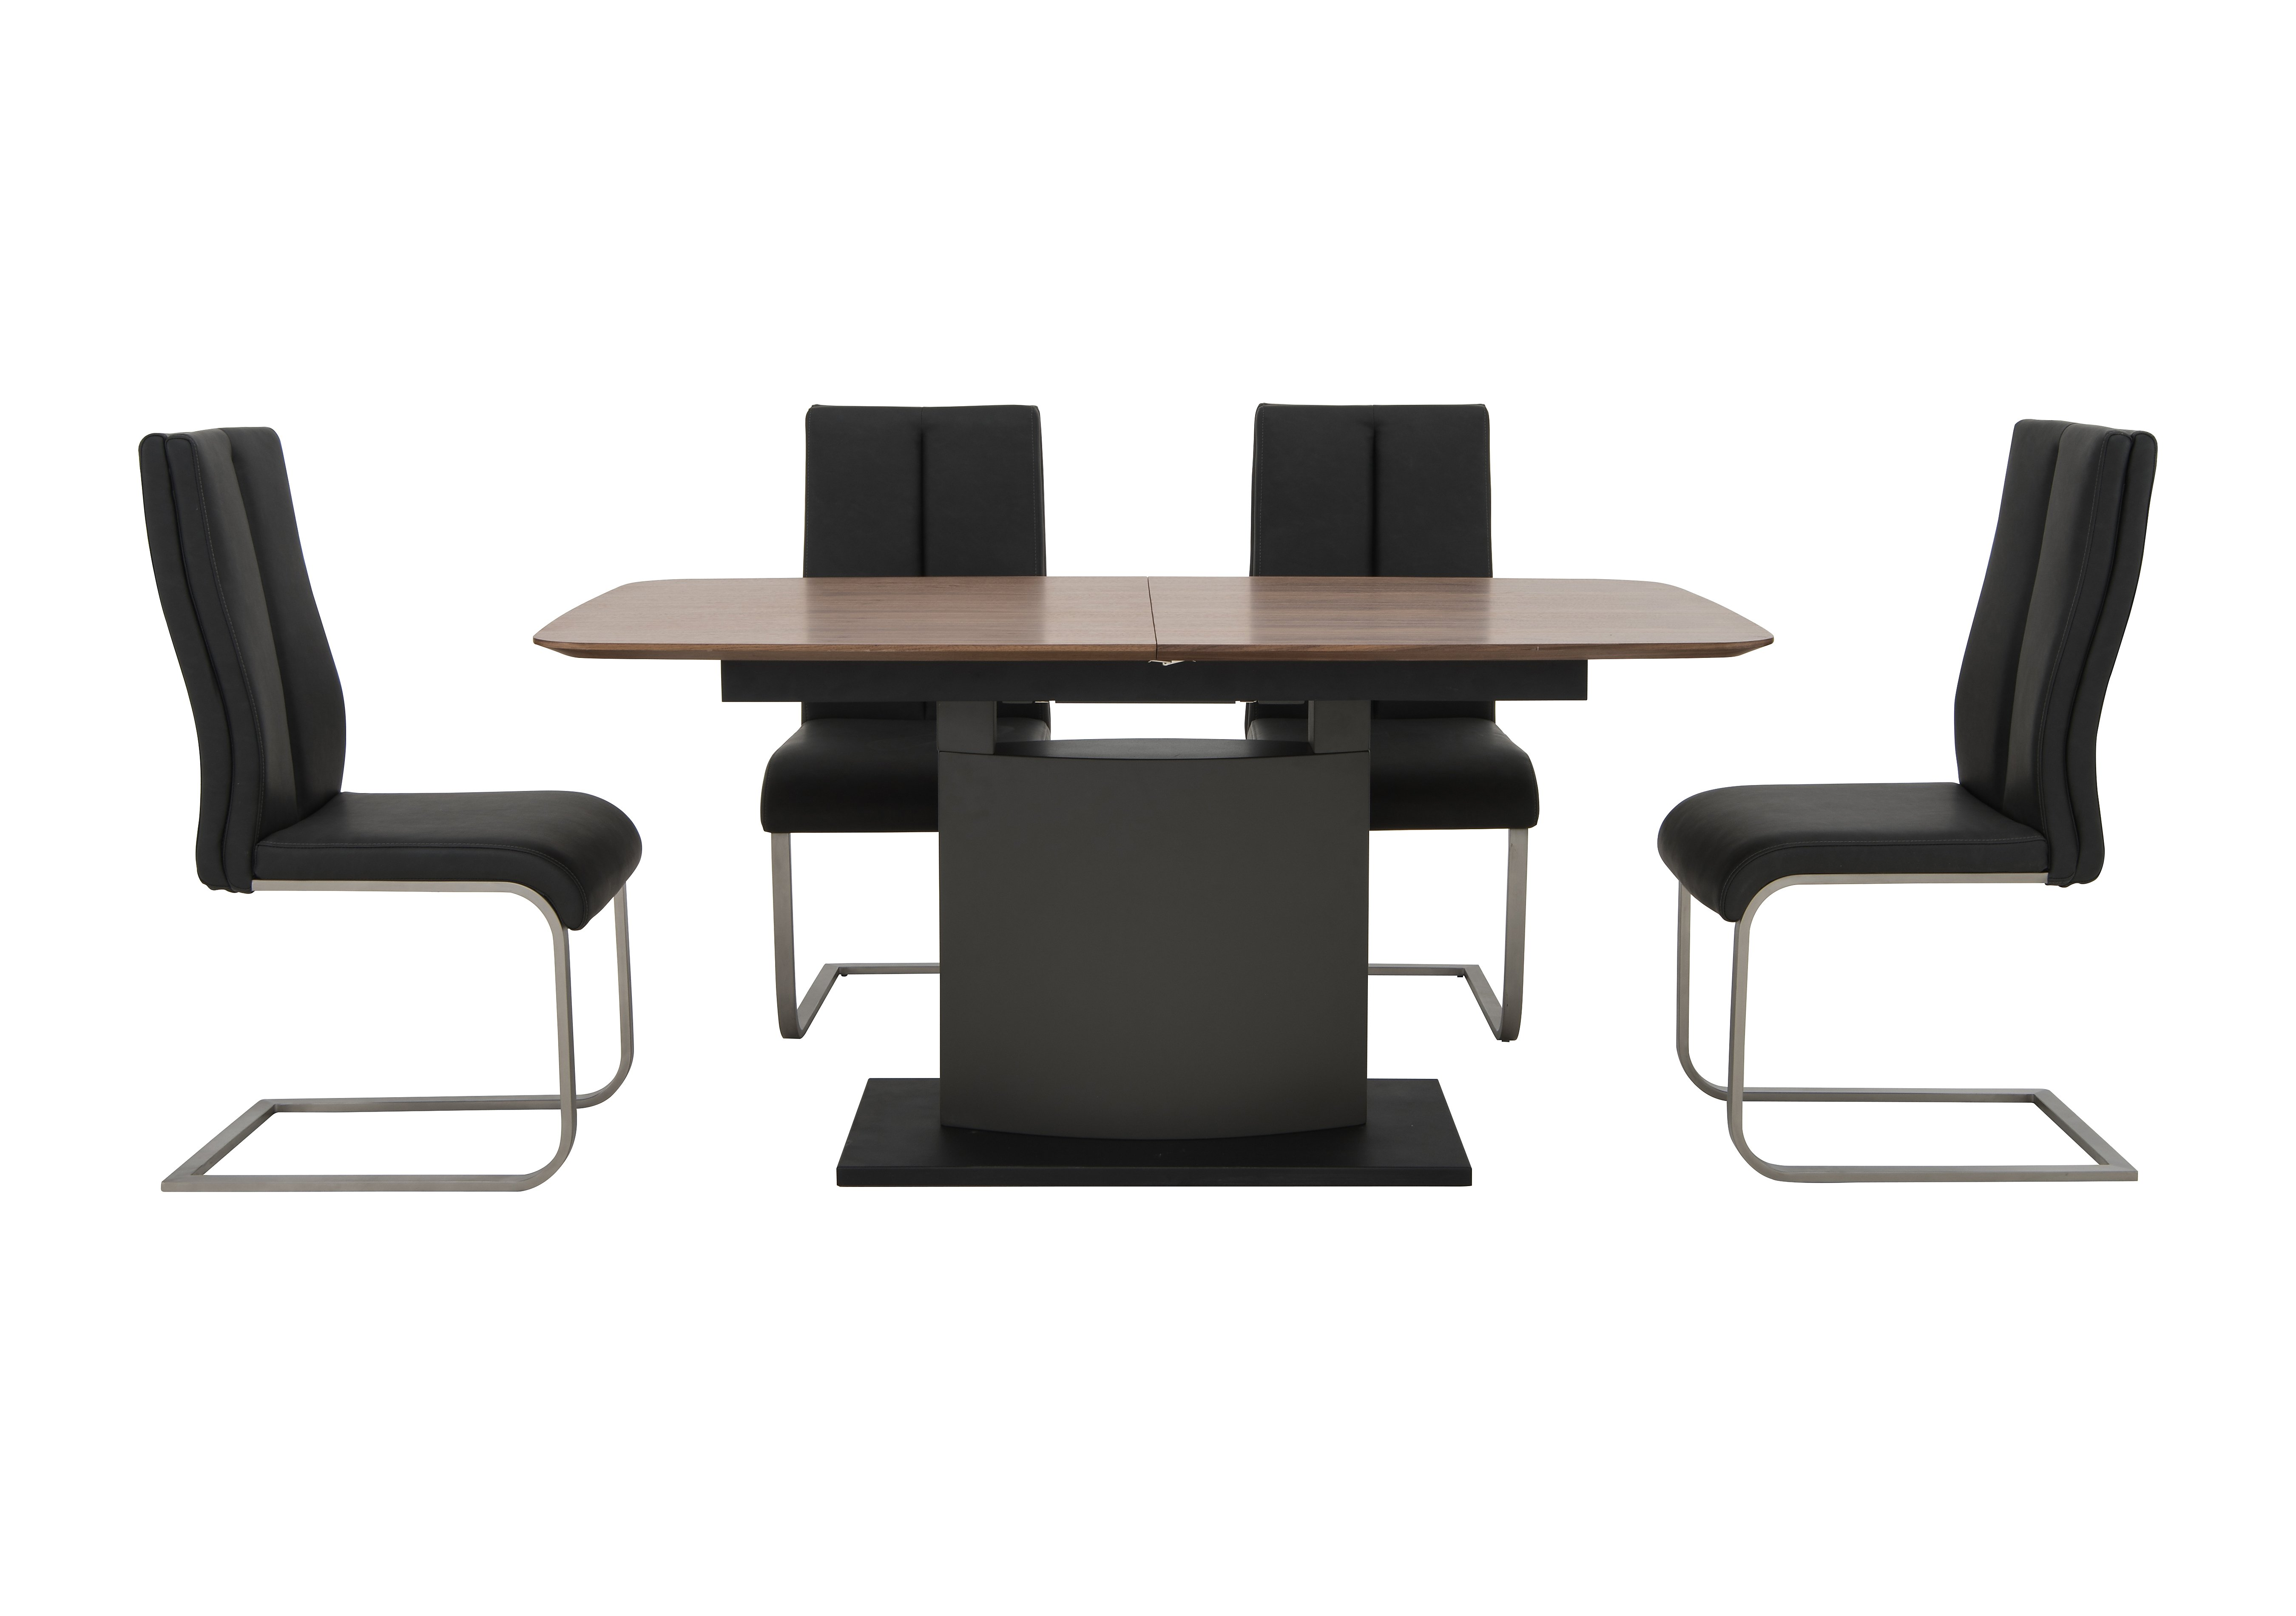 Moda Extending Dining Table and 4 Grey Dining Chairs Furniture